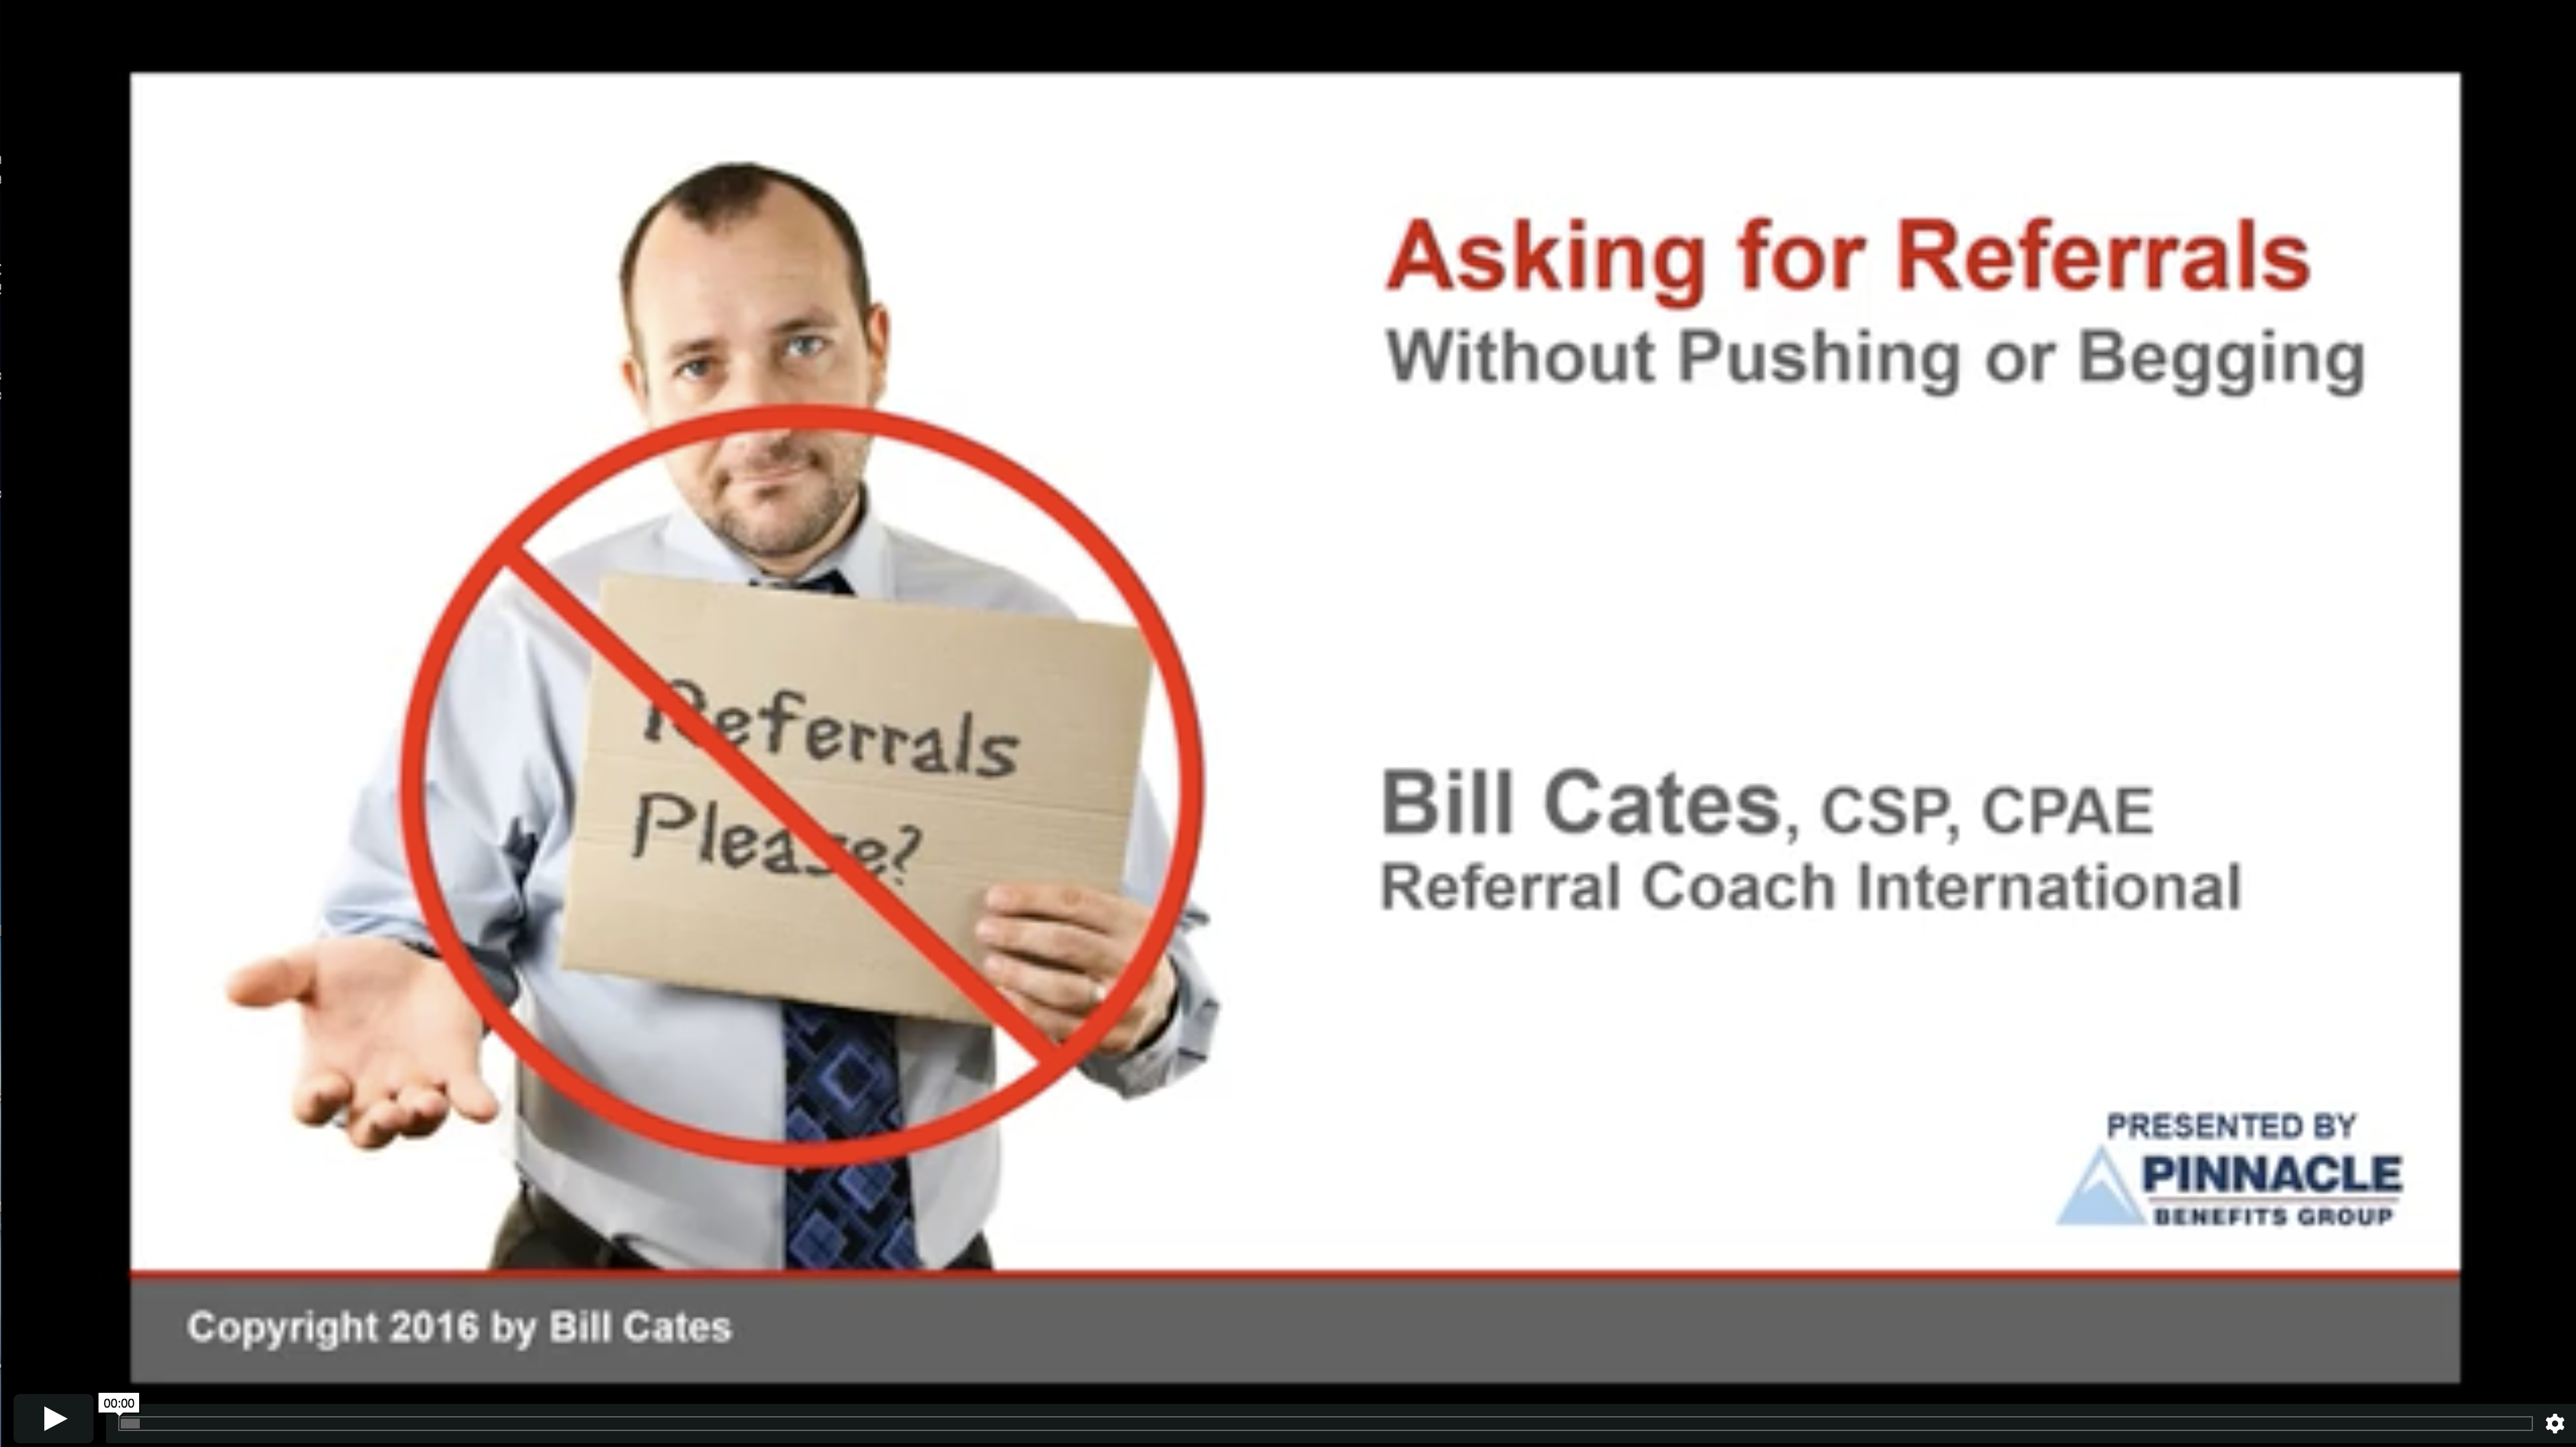 Asking for Referrals without Pushing or Begging